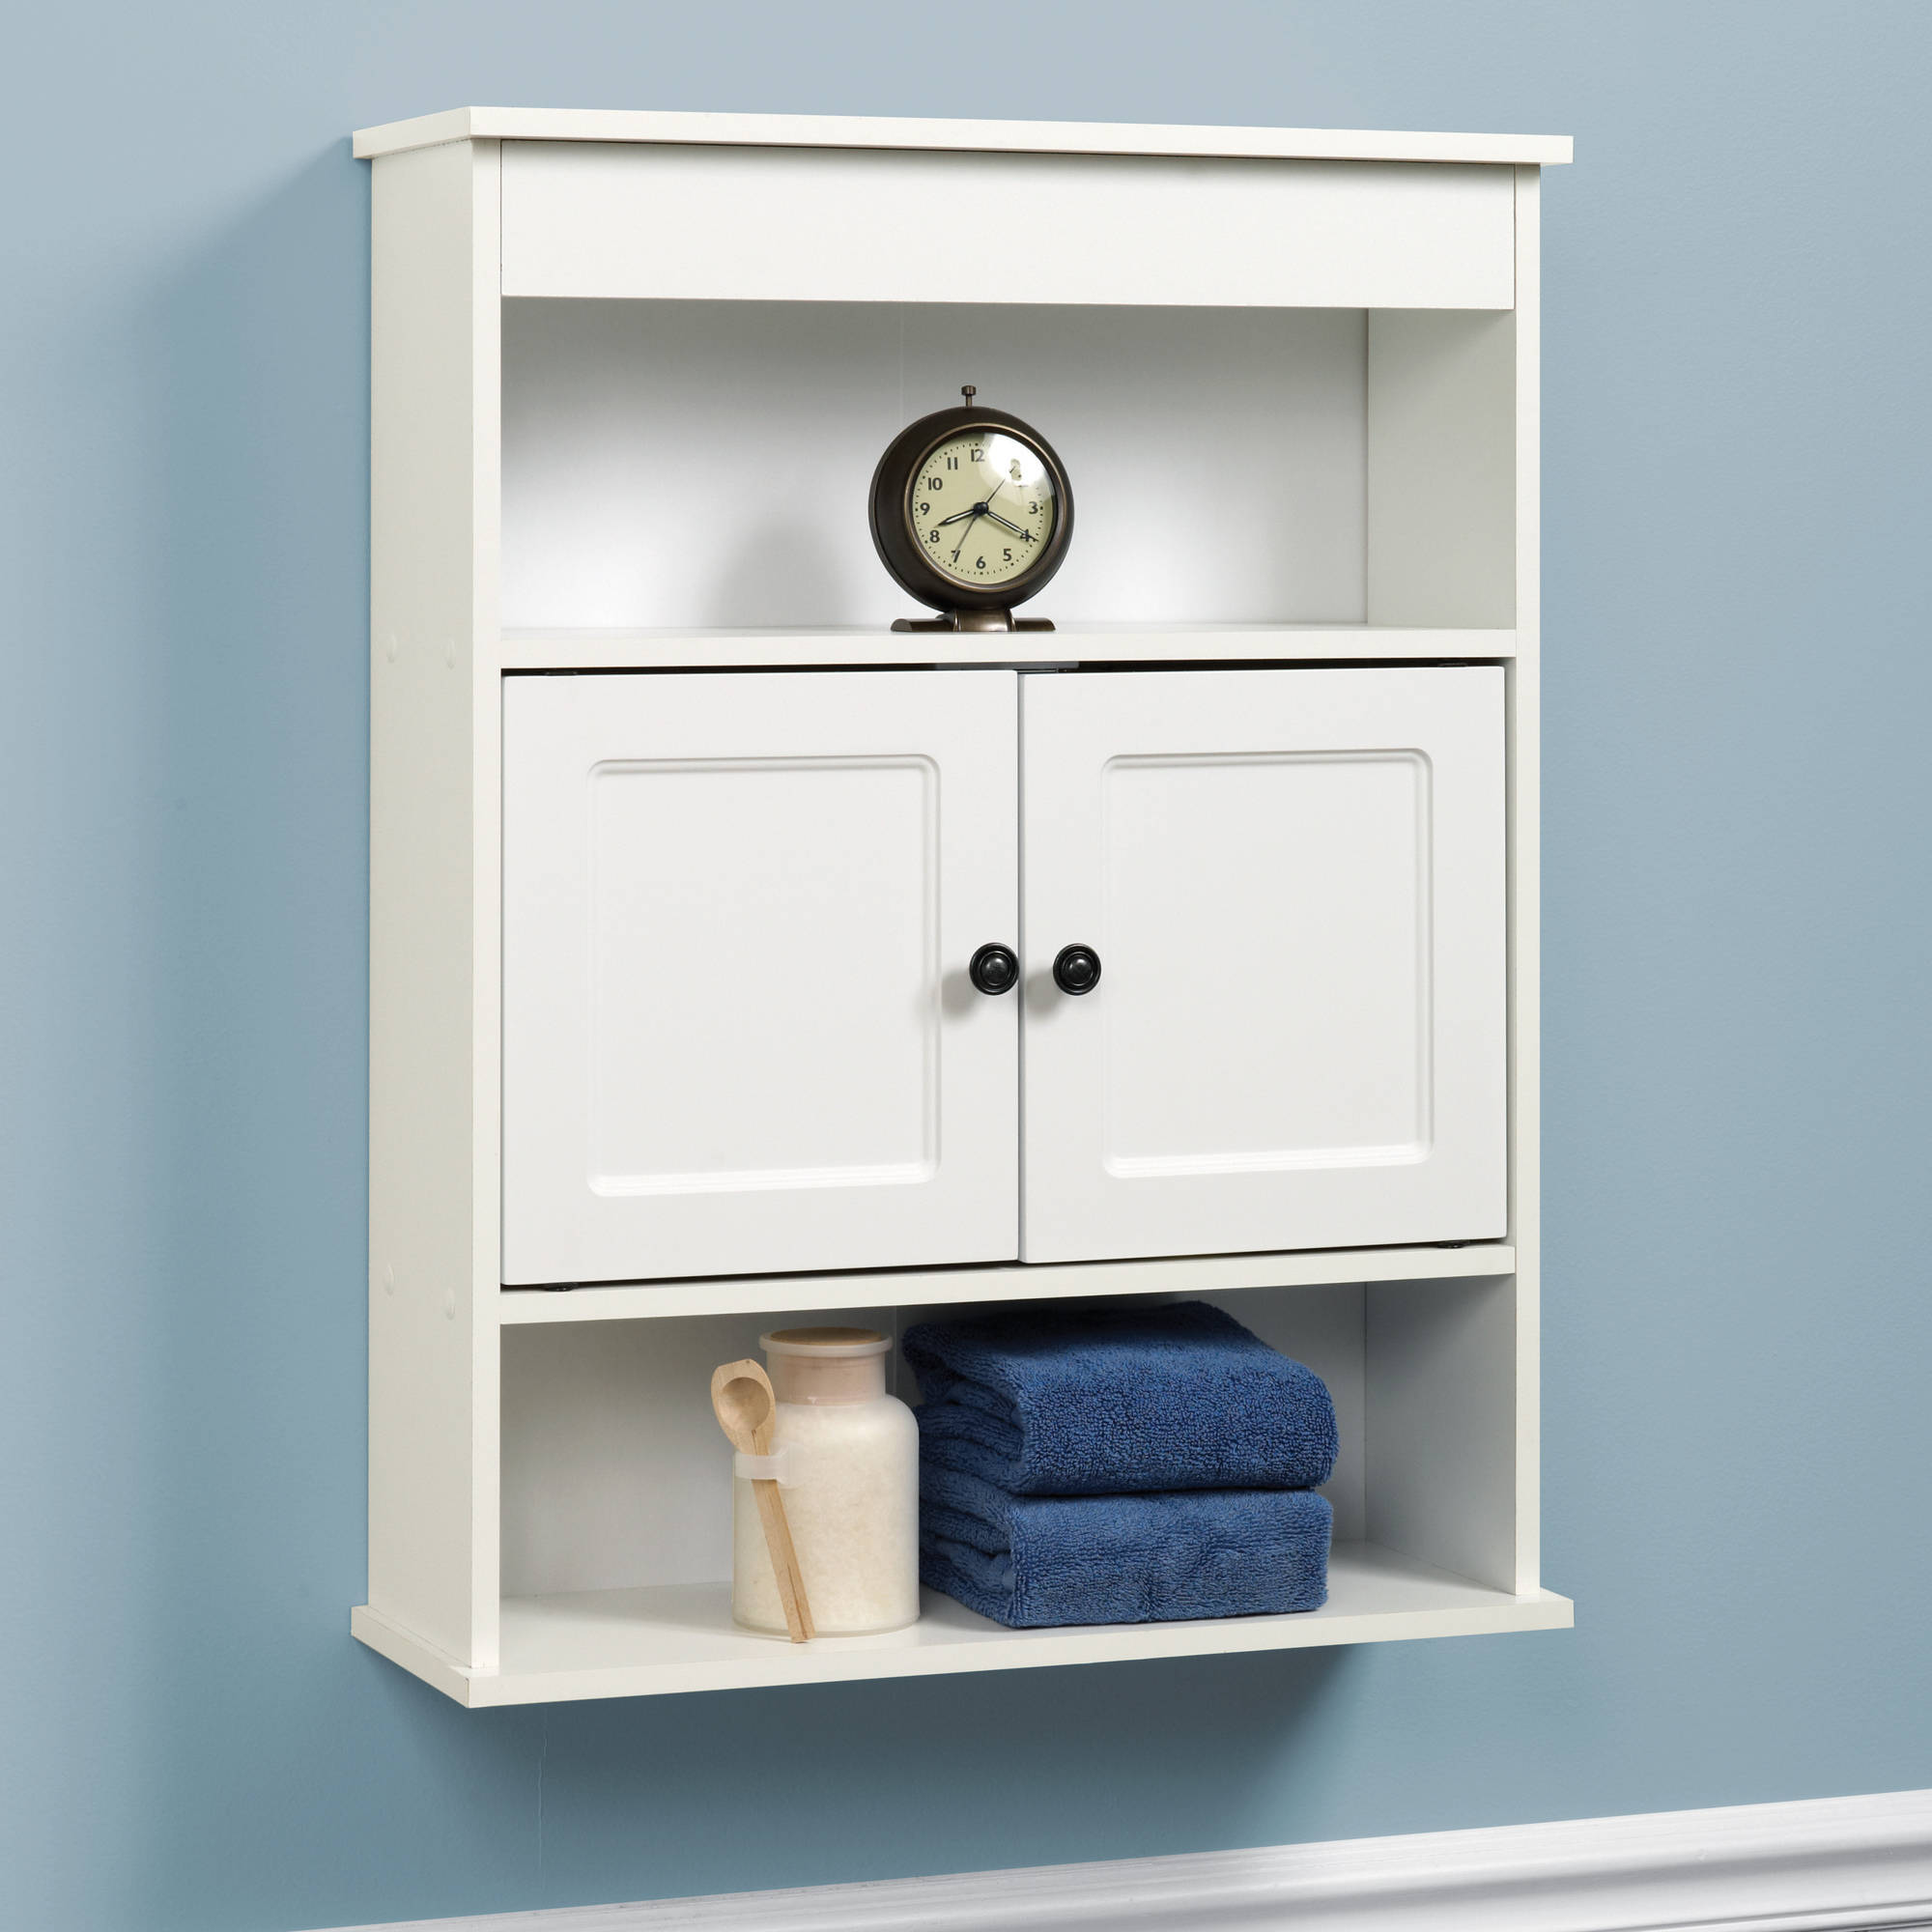 white wall mounted bathroom cabinets cabinet wall bathroom storage white shelf organizer 24698 | 91be7240 ee46 49f1 bcff 689b5f66de1a 1.e22778841b6722749f9b0f0b43bdbab2